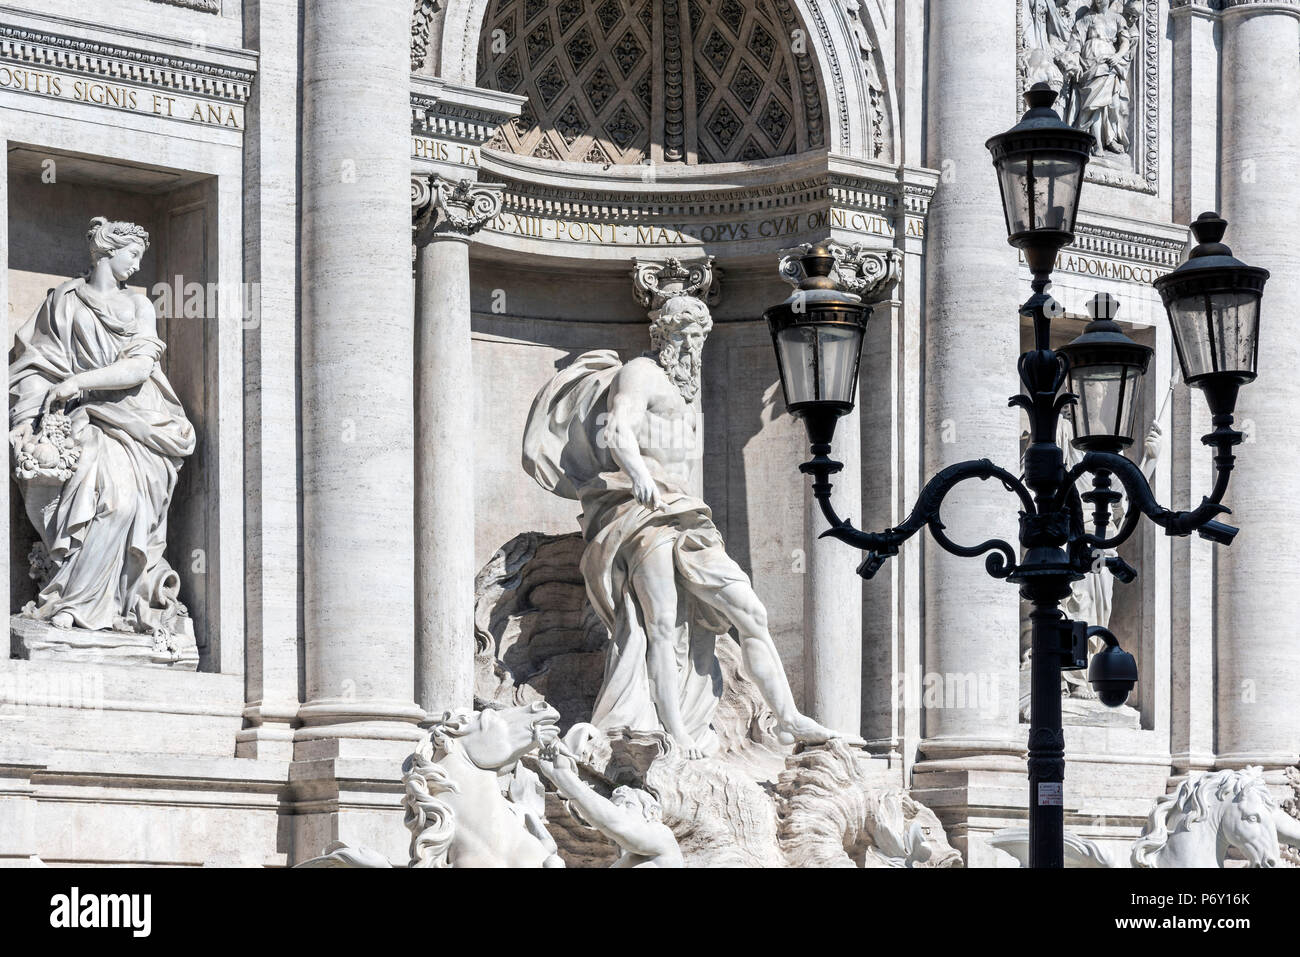 Close up view of the marble sculptures adorning the Trevi fountain, Rome, Lazio, Italy - Stock Image